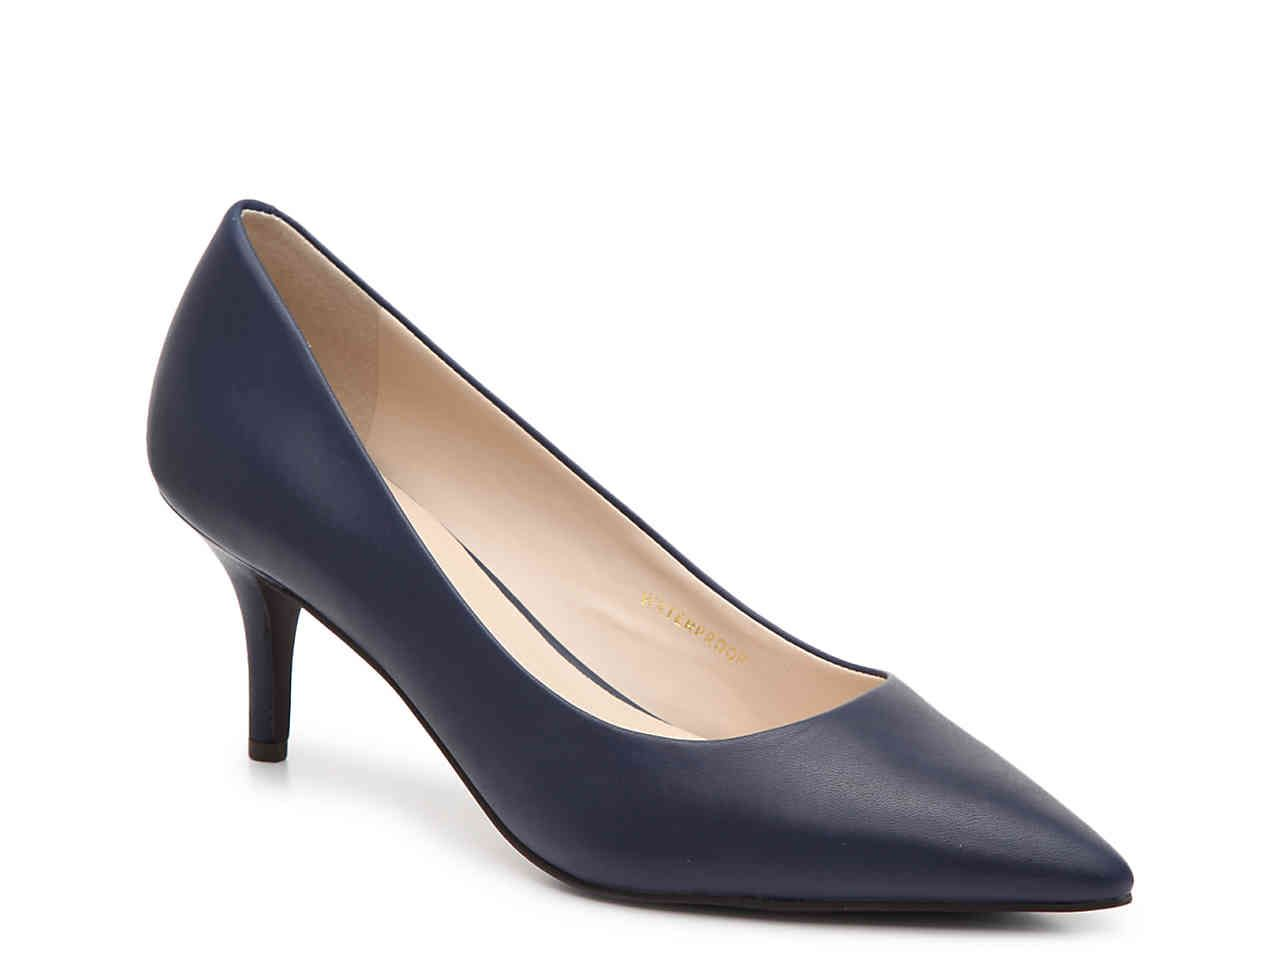 Cole Haan Marta Pump Women's Shoes DSW (With images